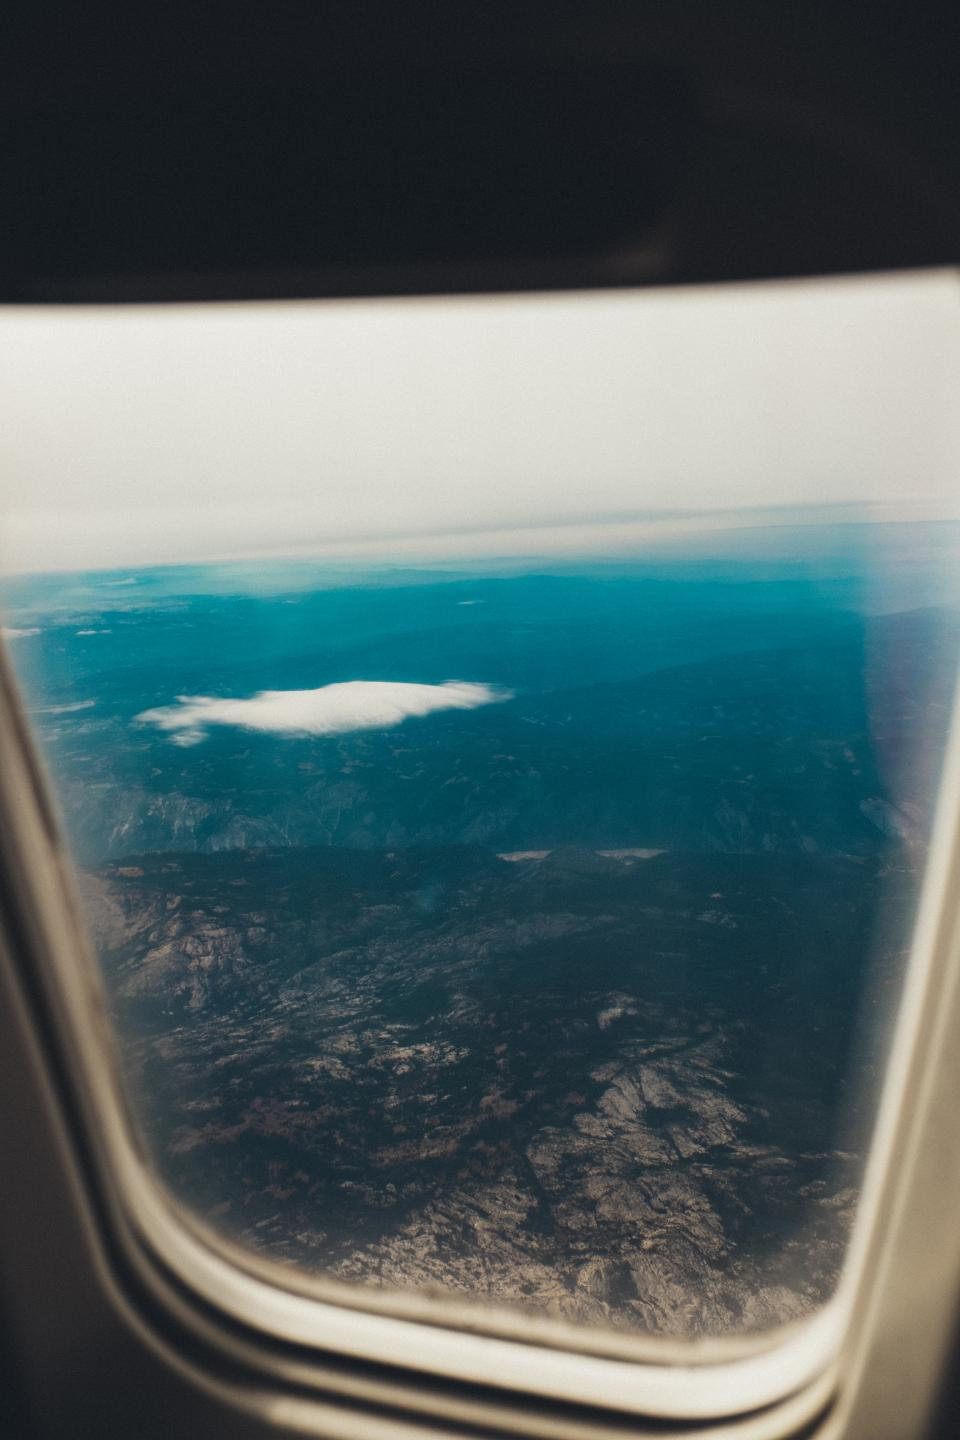 airplane, window, flying, flight, travel, transportation, trip, aerial, view, mountains, sky